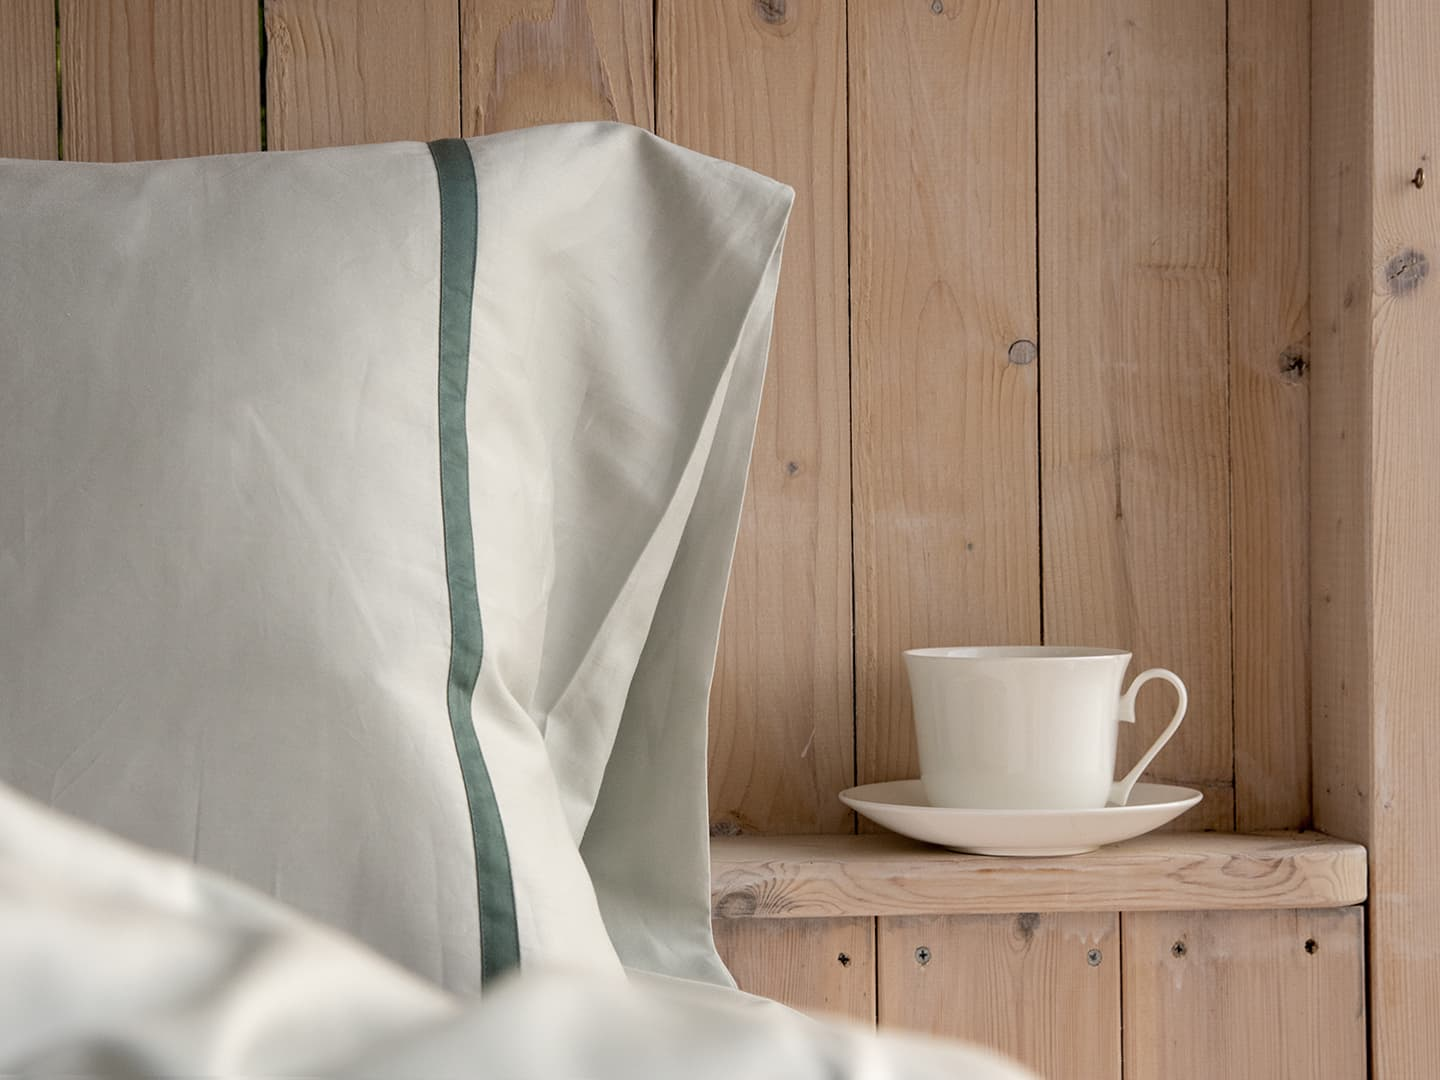 Pillowcase Gatt - Misty Green in the group Bedding / Pillowcases at A L V A (1106)